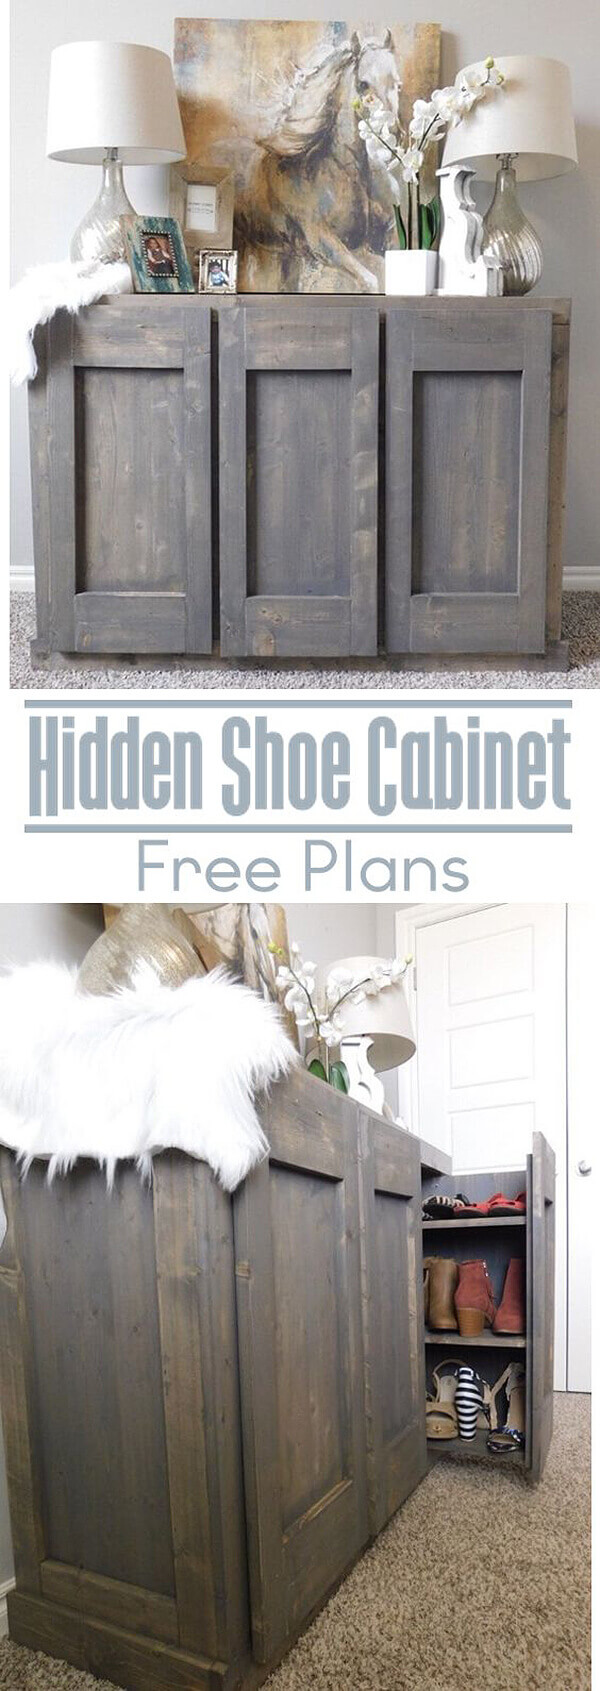 Cabinet With Hidden Shoe Rack